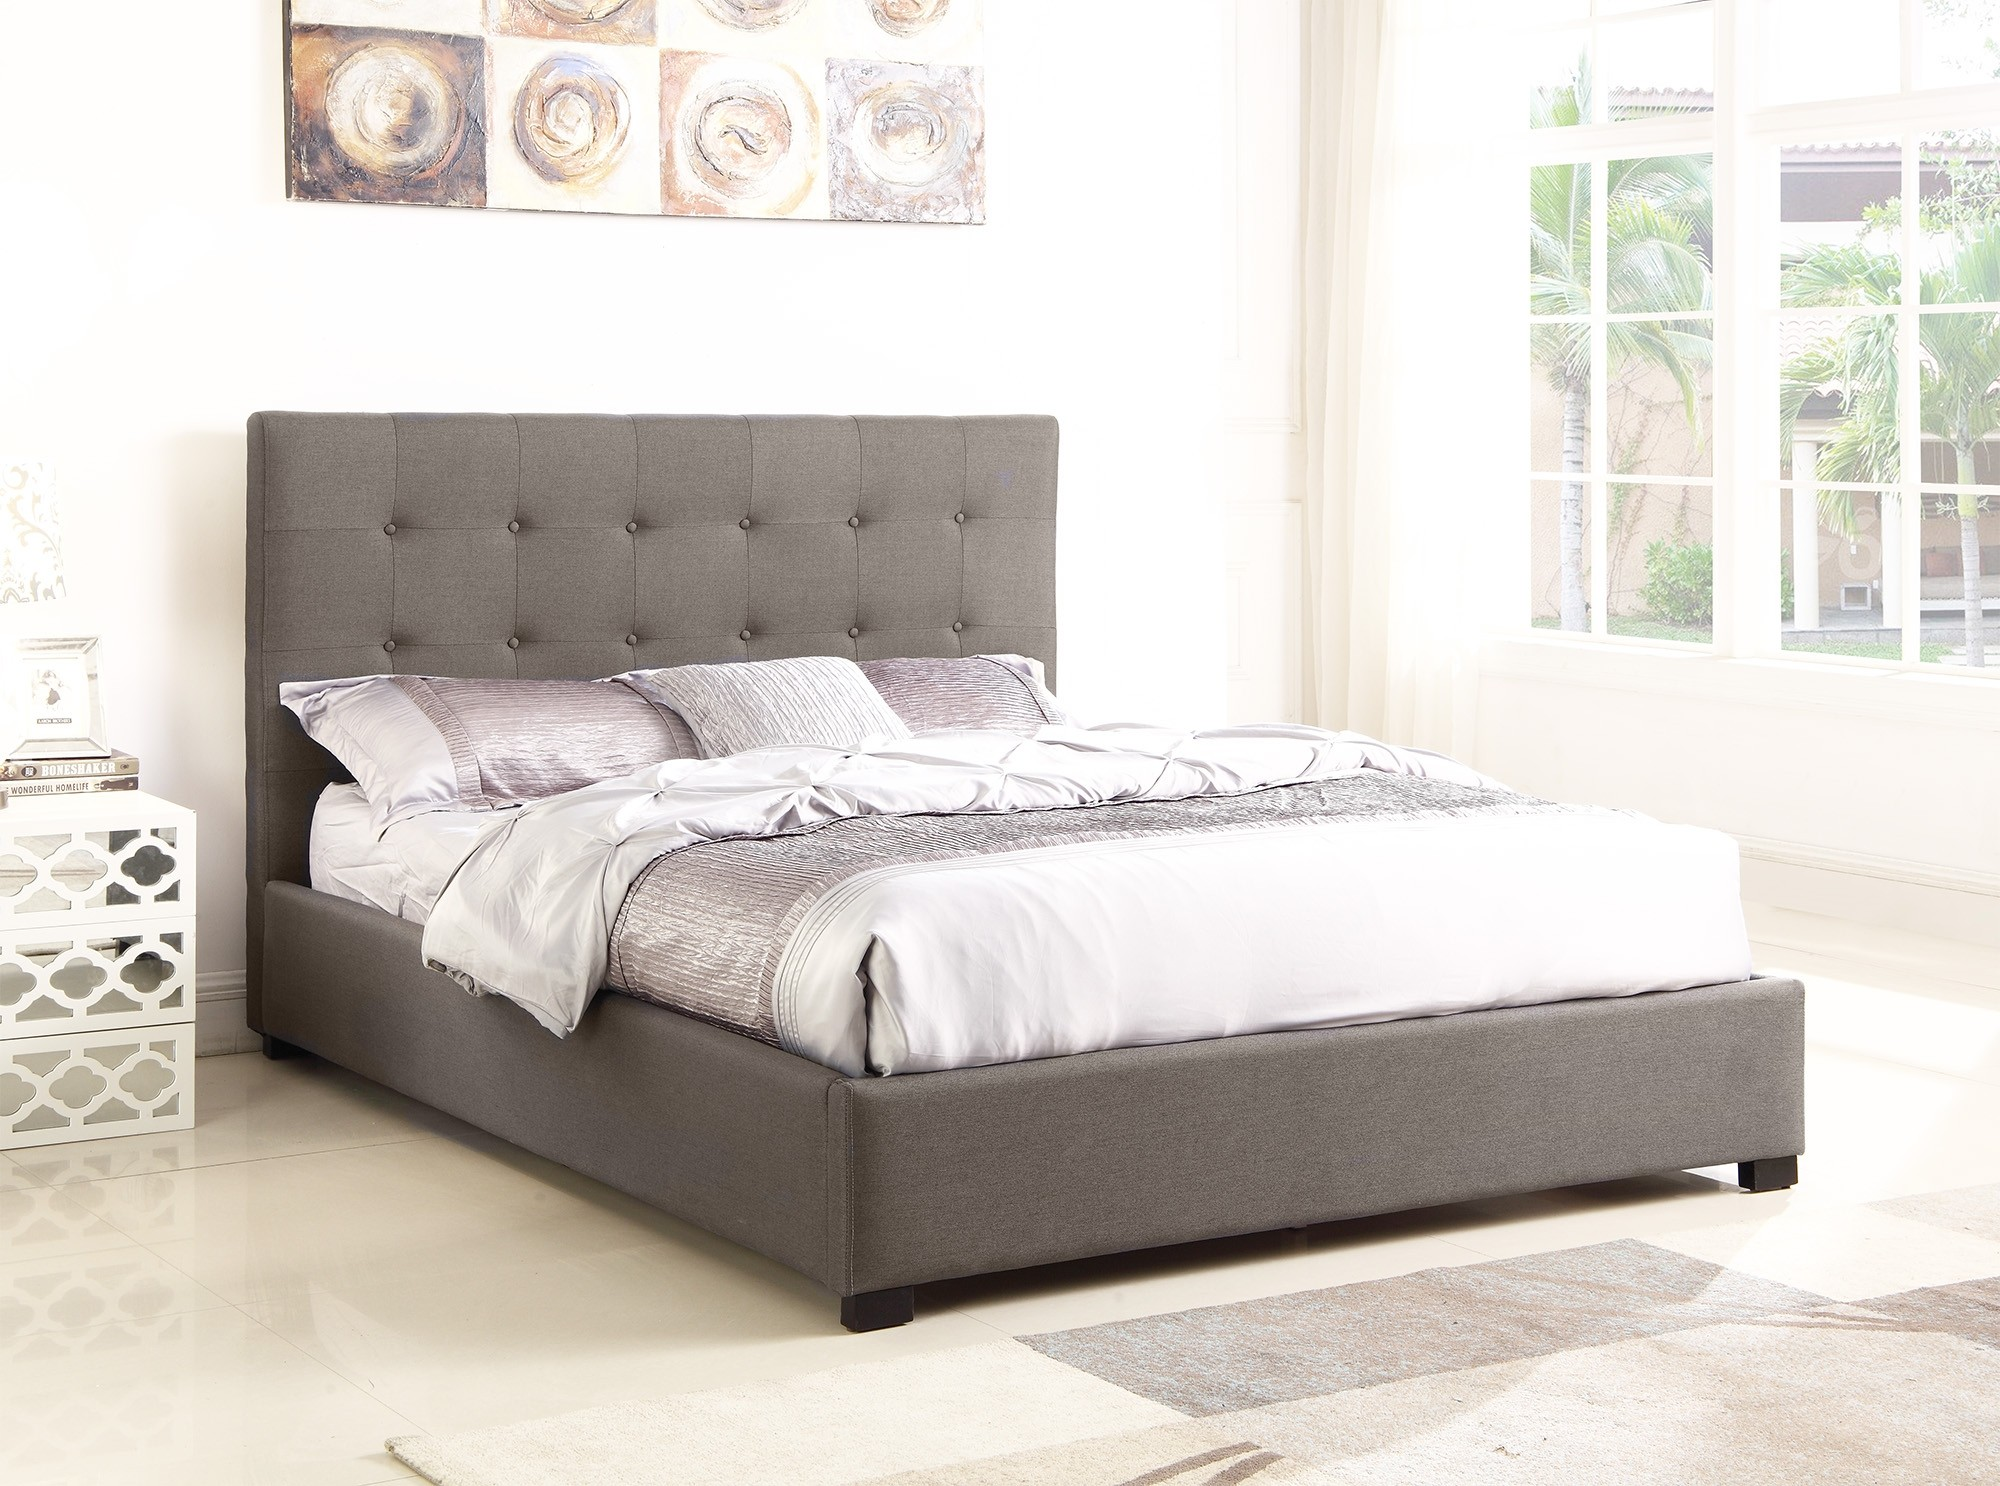 lit coffre layton sommier 140cm tissu taupe lits 2 places. Black Bedroom Furniture Sets. Home Design Ideas